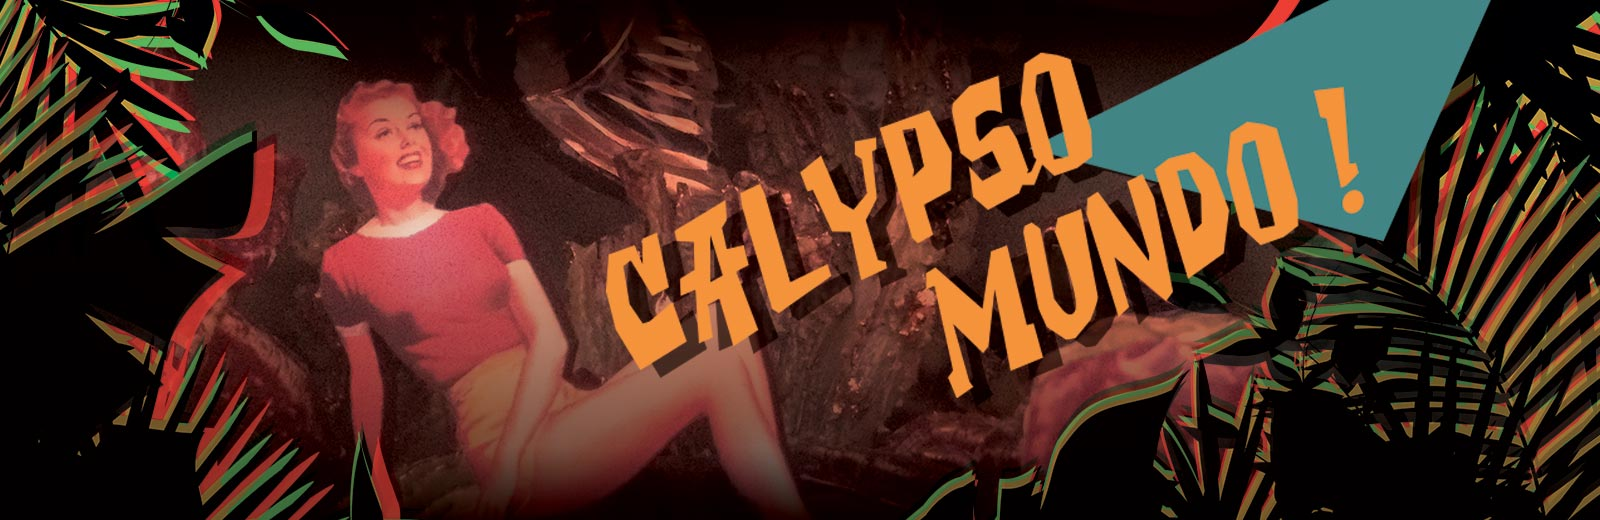 Association Chantilly Negra – Muddy Gurdy – Hypnotic wheel – Calypso mundo